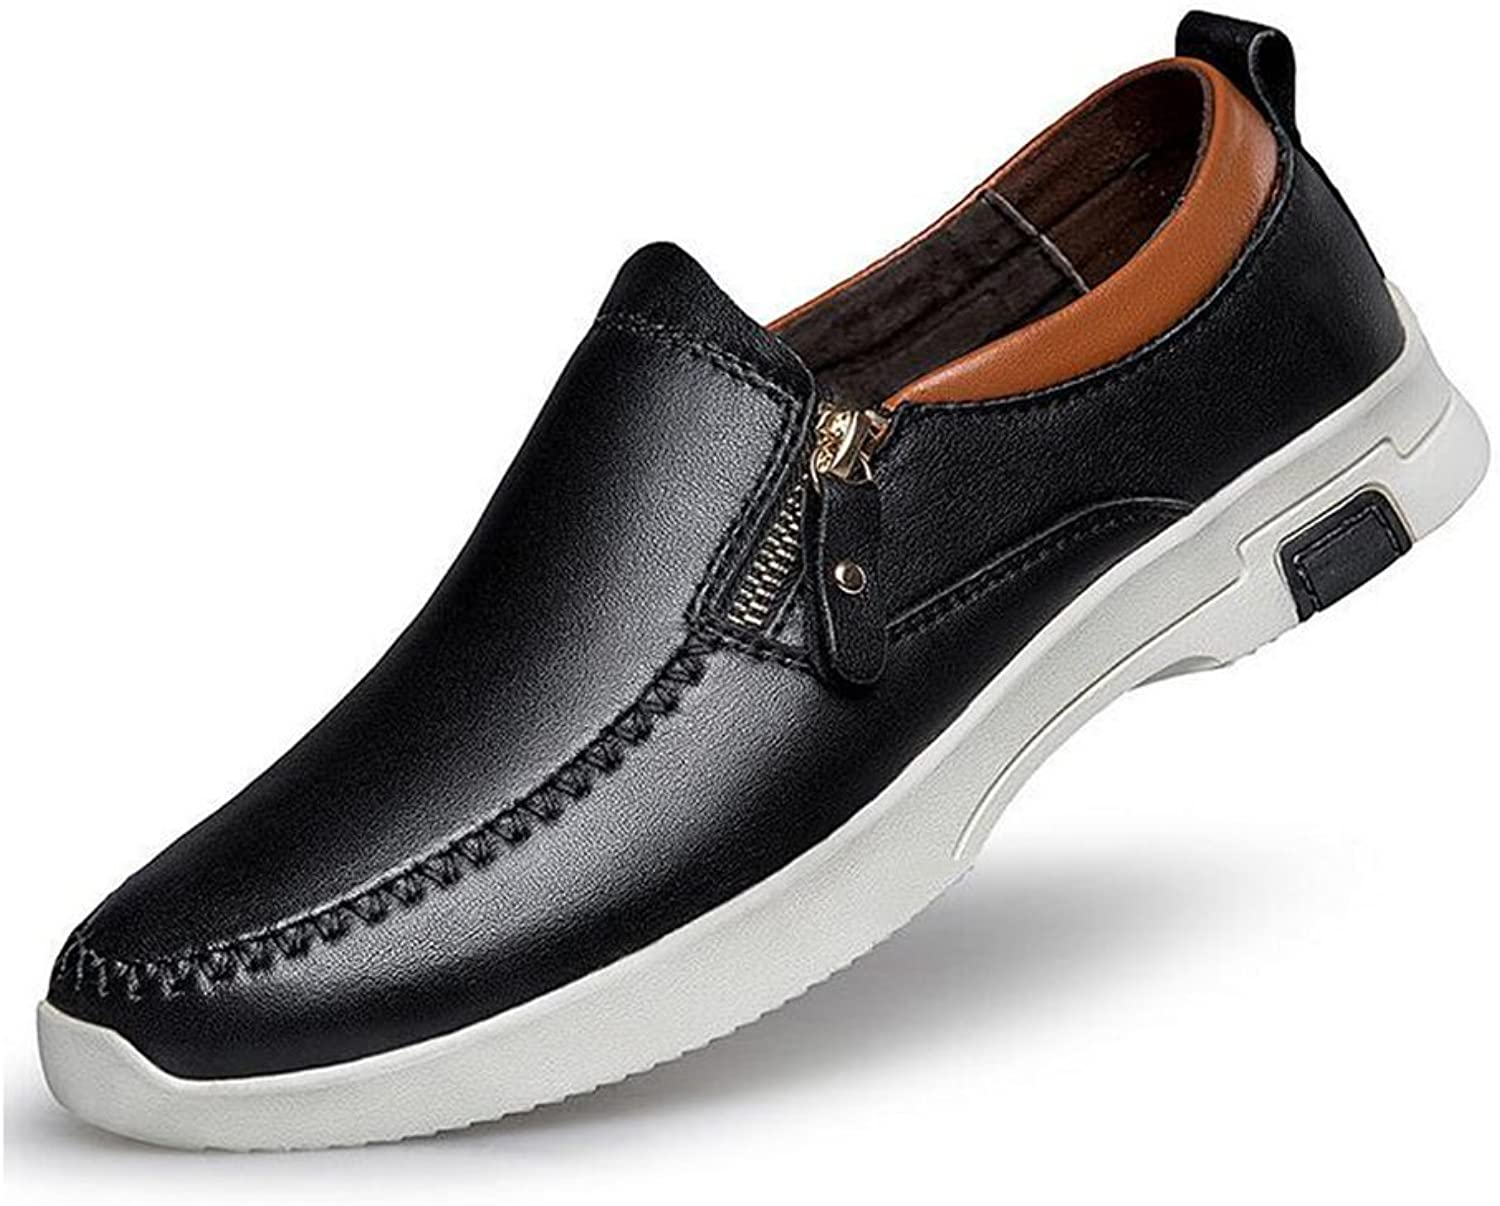 HUAN shoes Mens Casual shoes Leather Formal Business Work Flat Loafers (color   Black, Size   38)